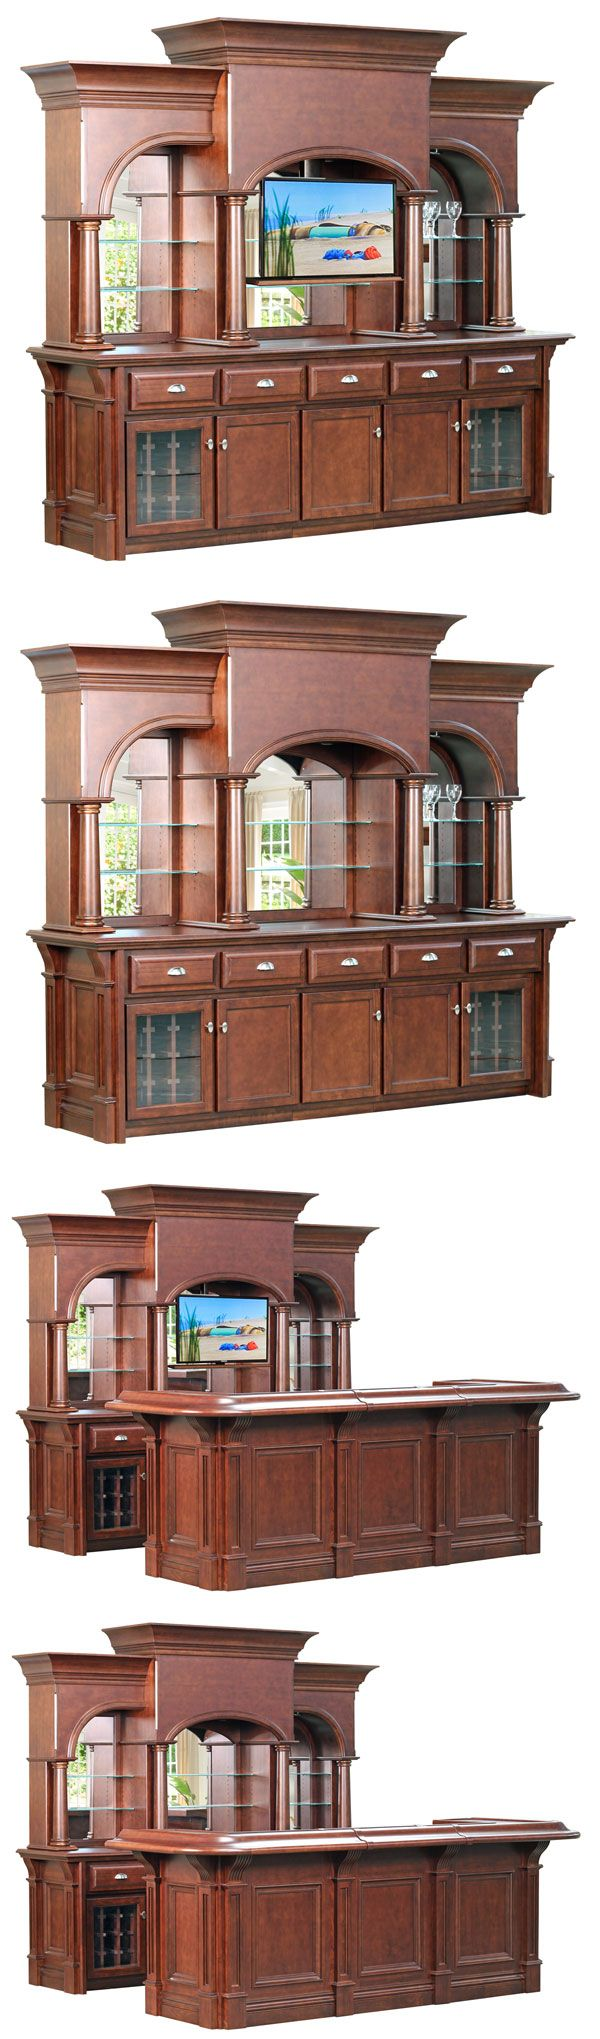 Best Images About Home Bar On Pinterest Build Your Own Bar - Back bar designs for home